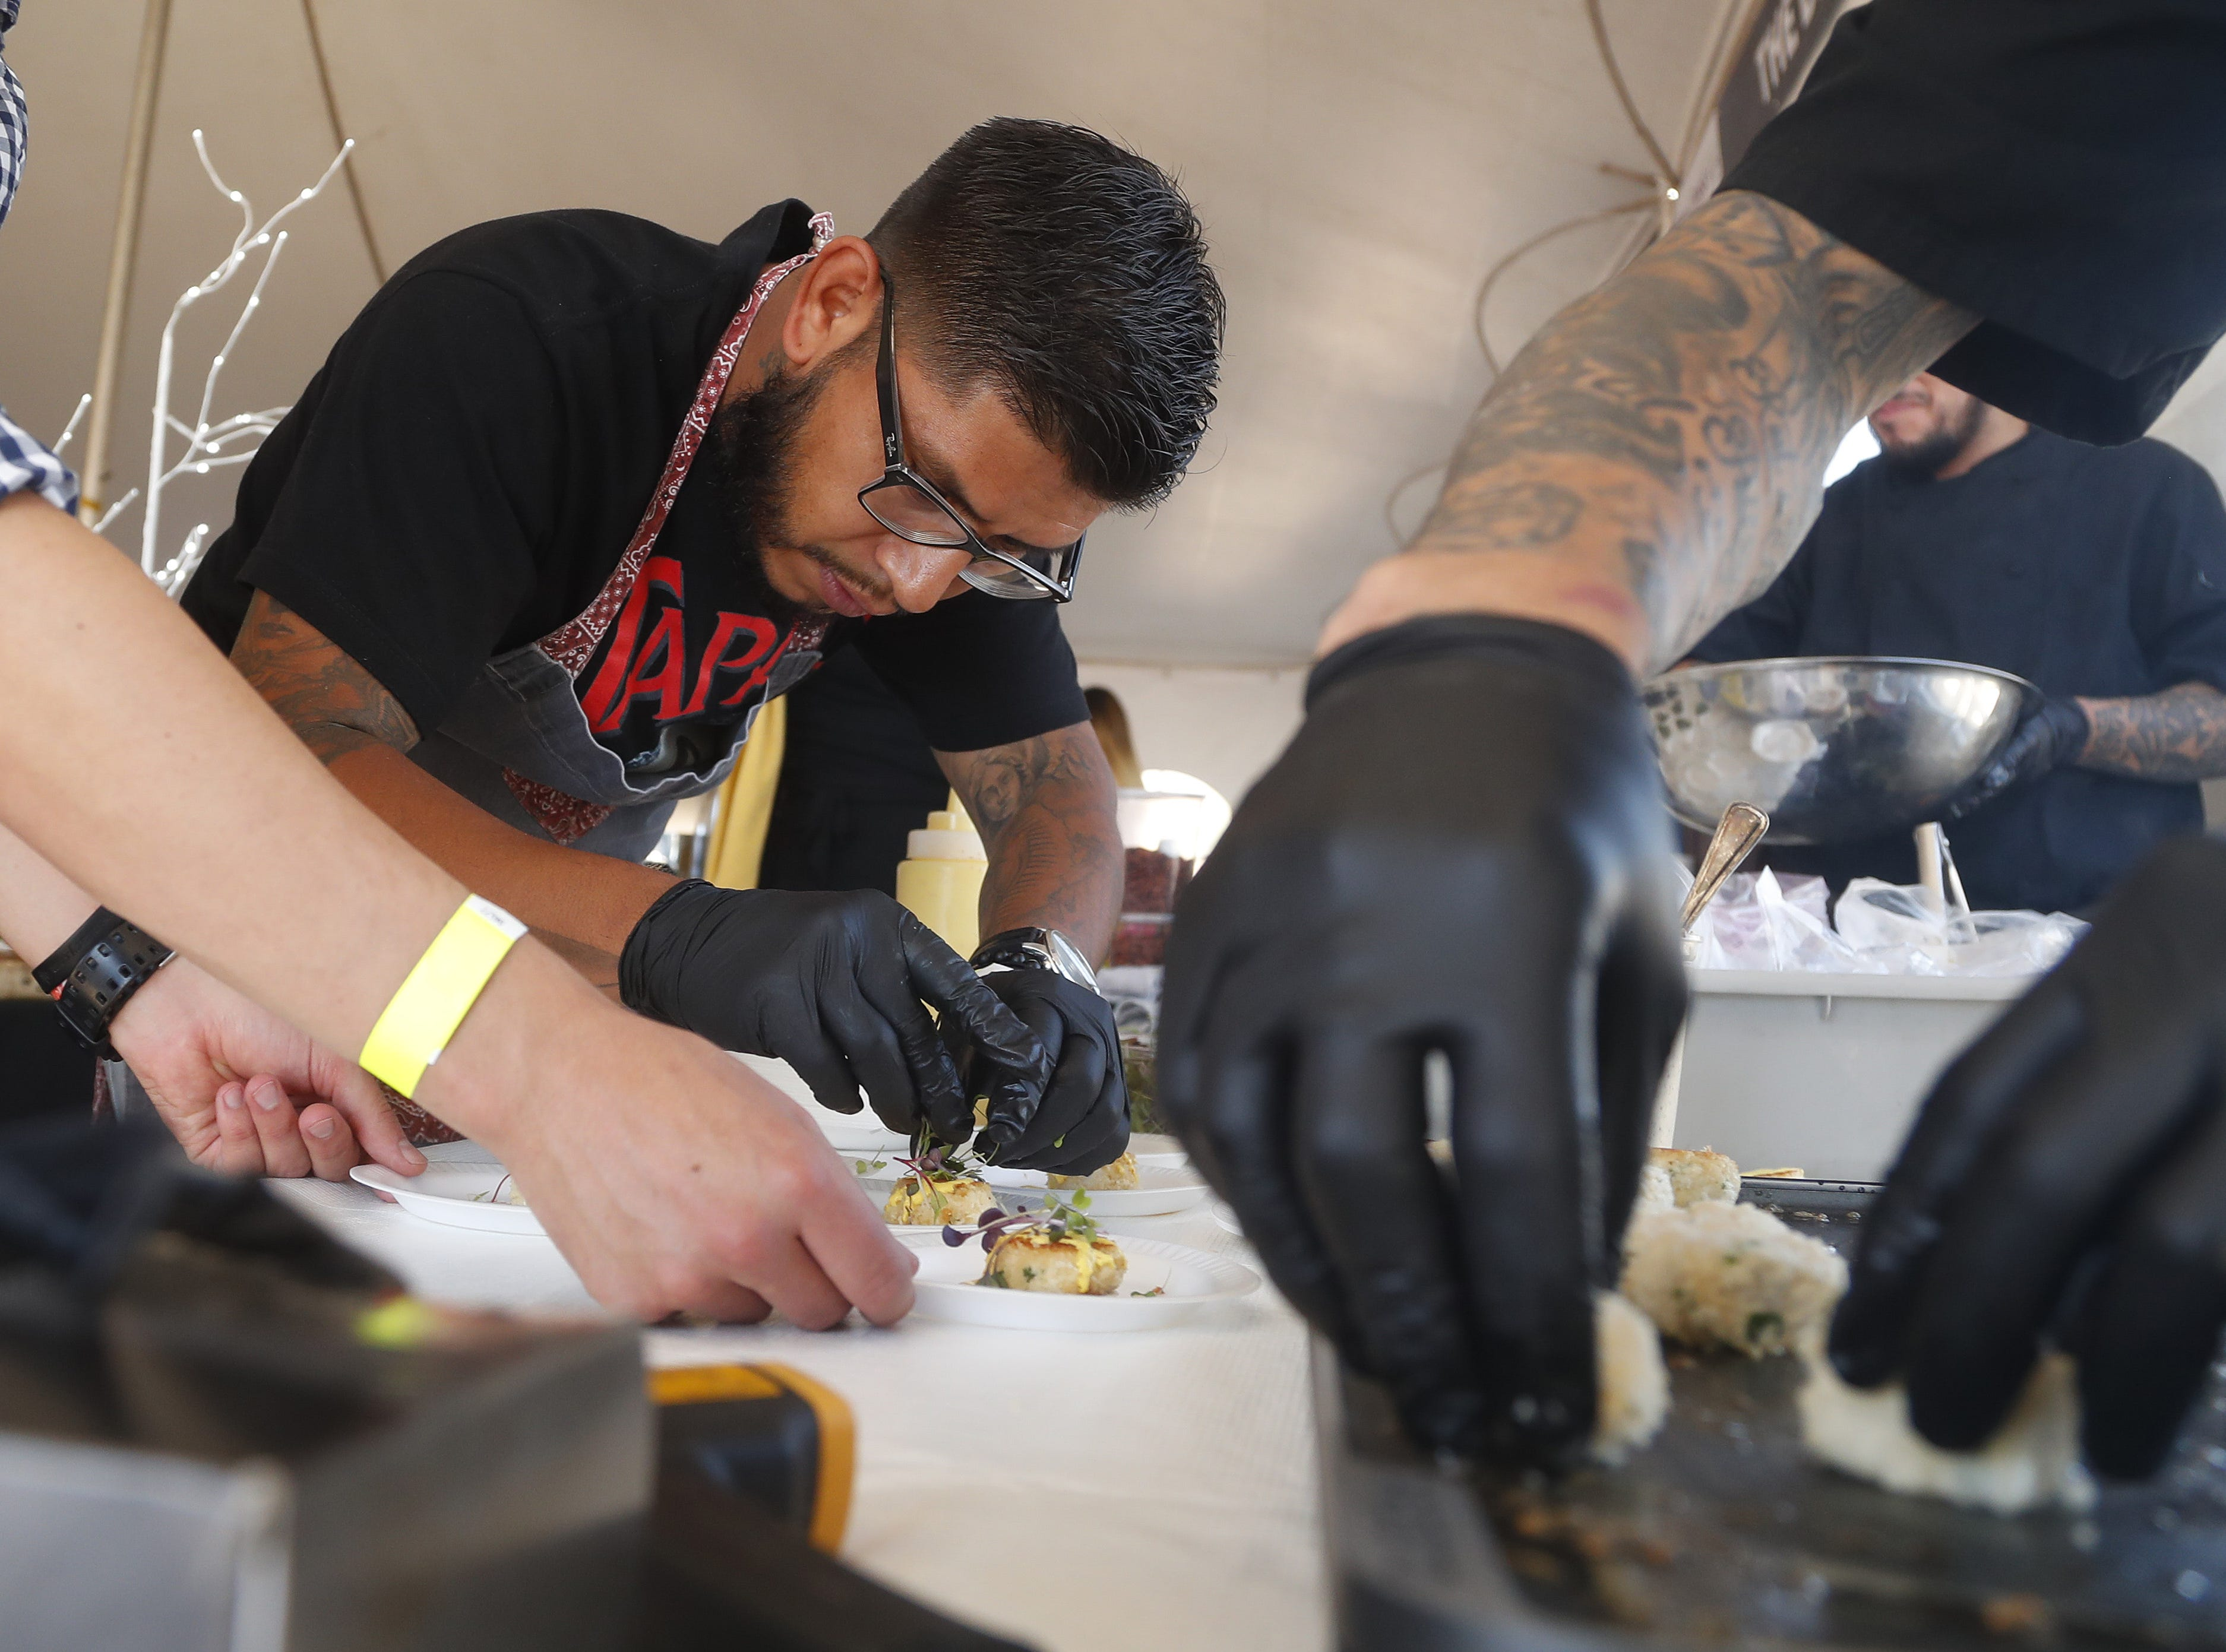 Timo Wine Bar's chef Tony Gordillo (center) preps a plate of jumbo lump crab during the azcentral Wine & Food Experience at WestWorld of Scottsdale, Ariz. on Saturday, Nov. 3, 2018.